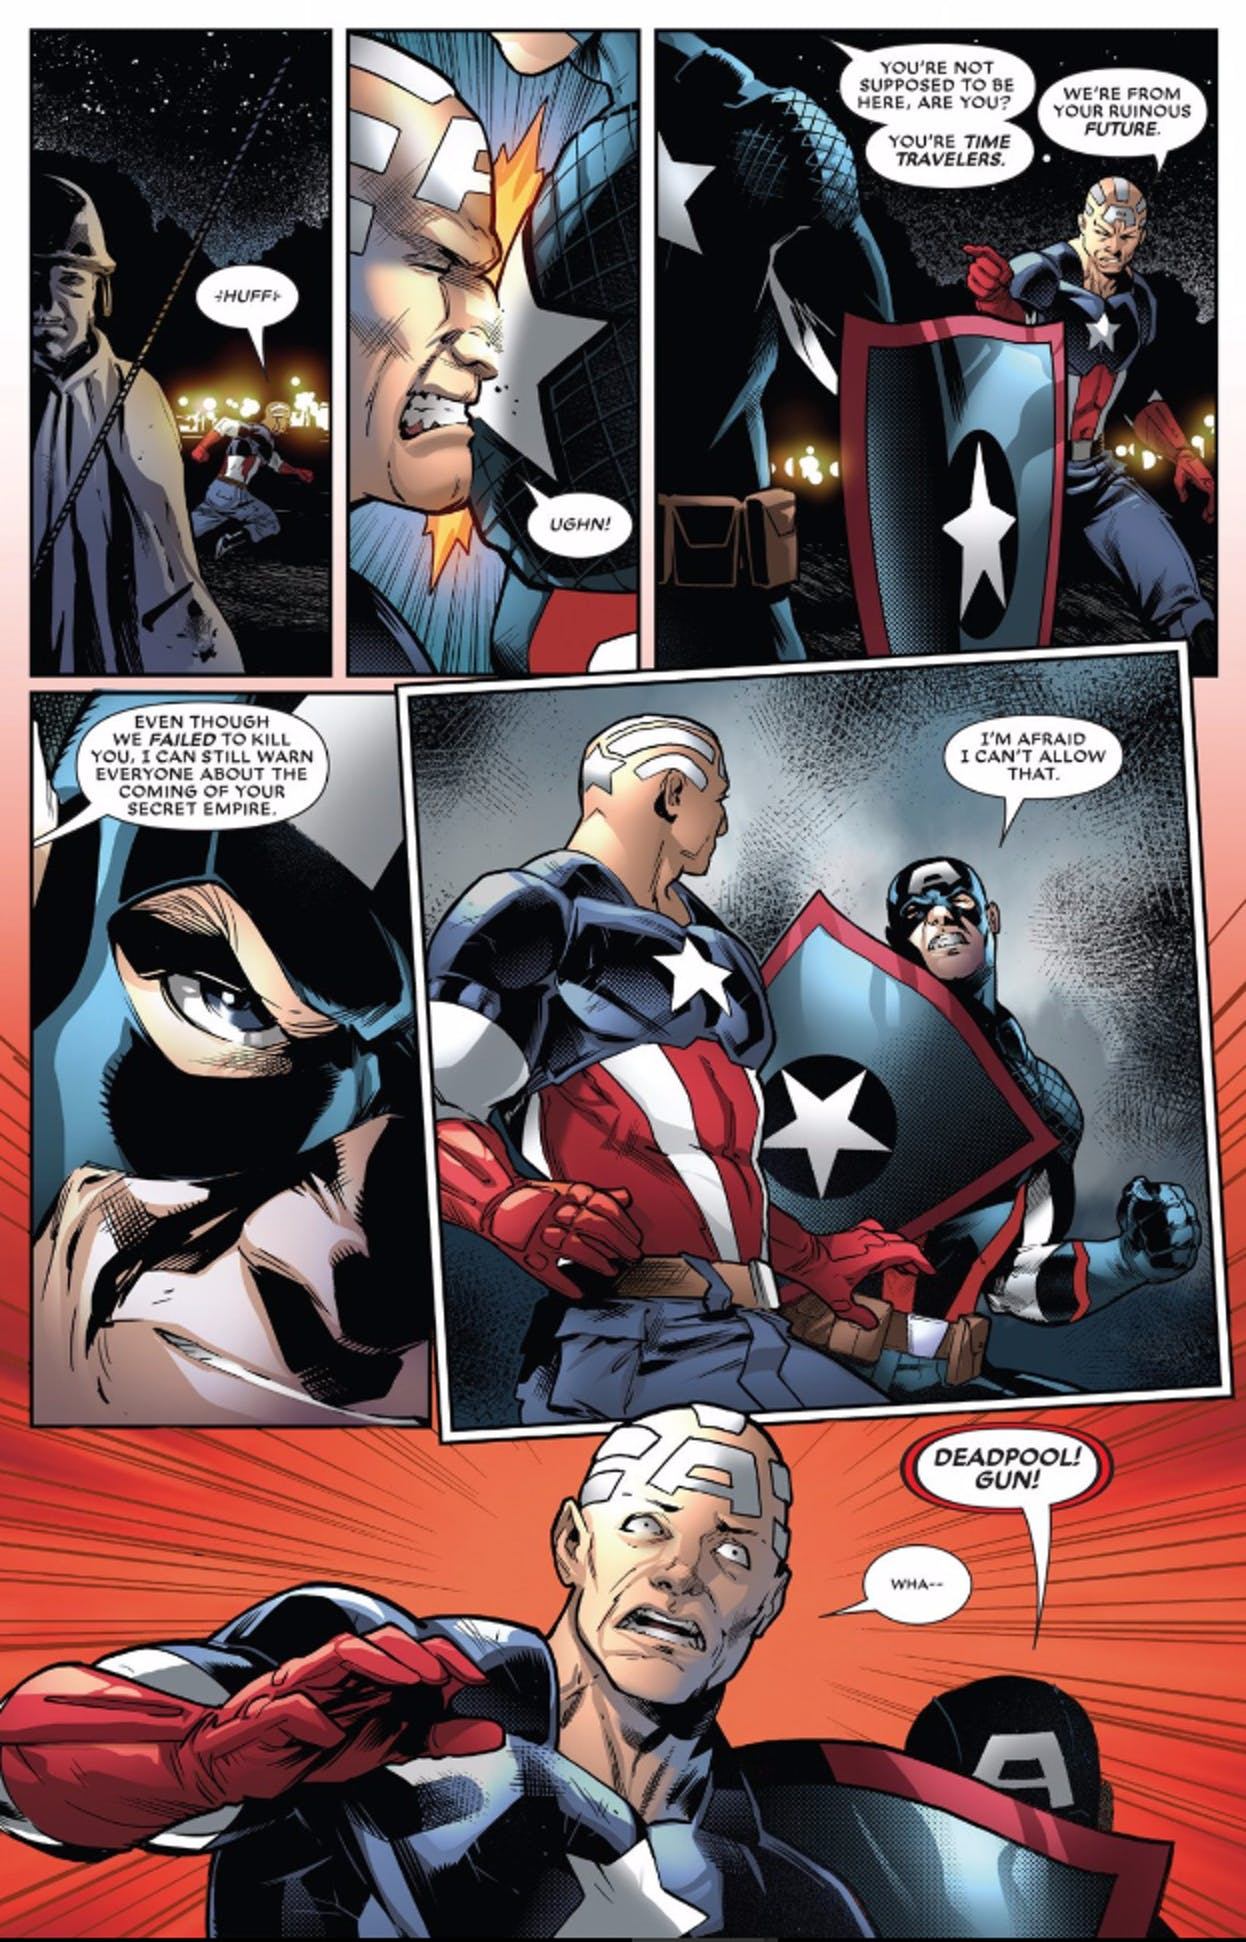 Page from Deadpool #27 from Marvel Comics